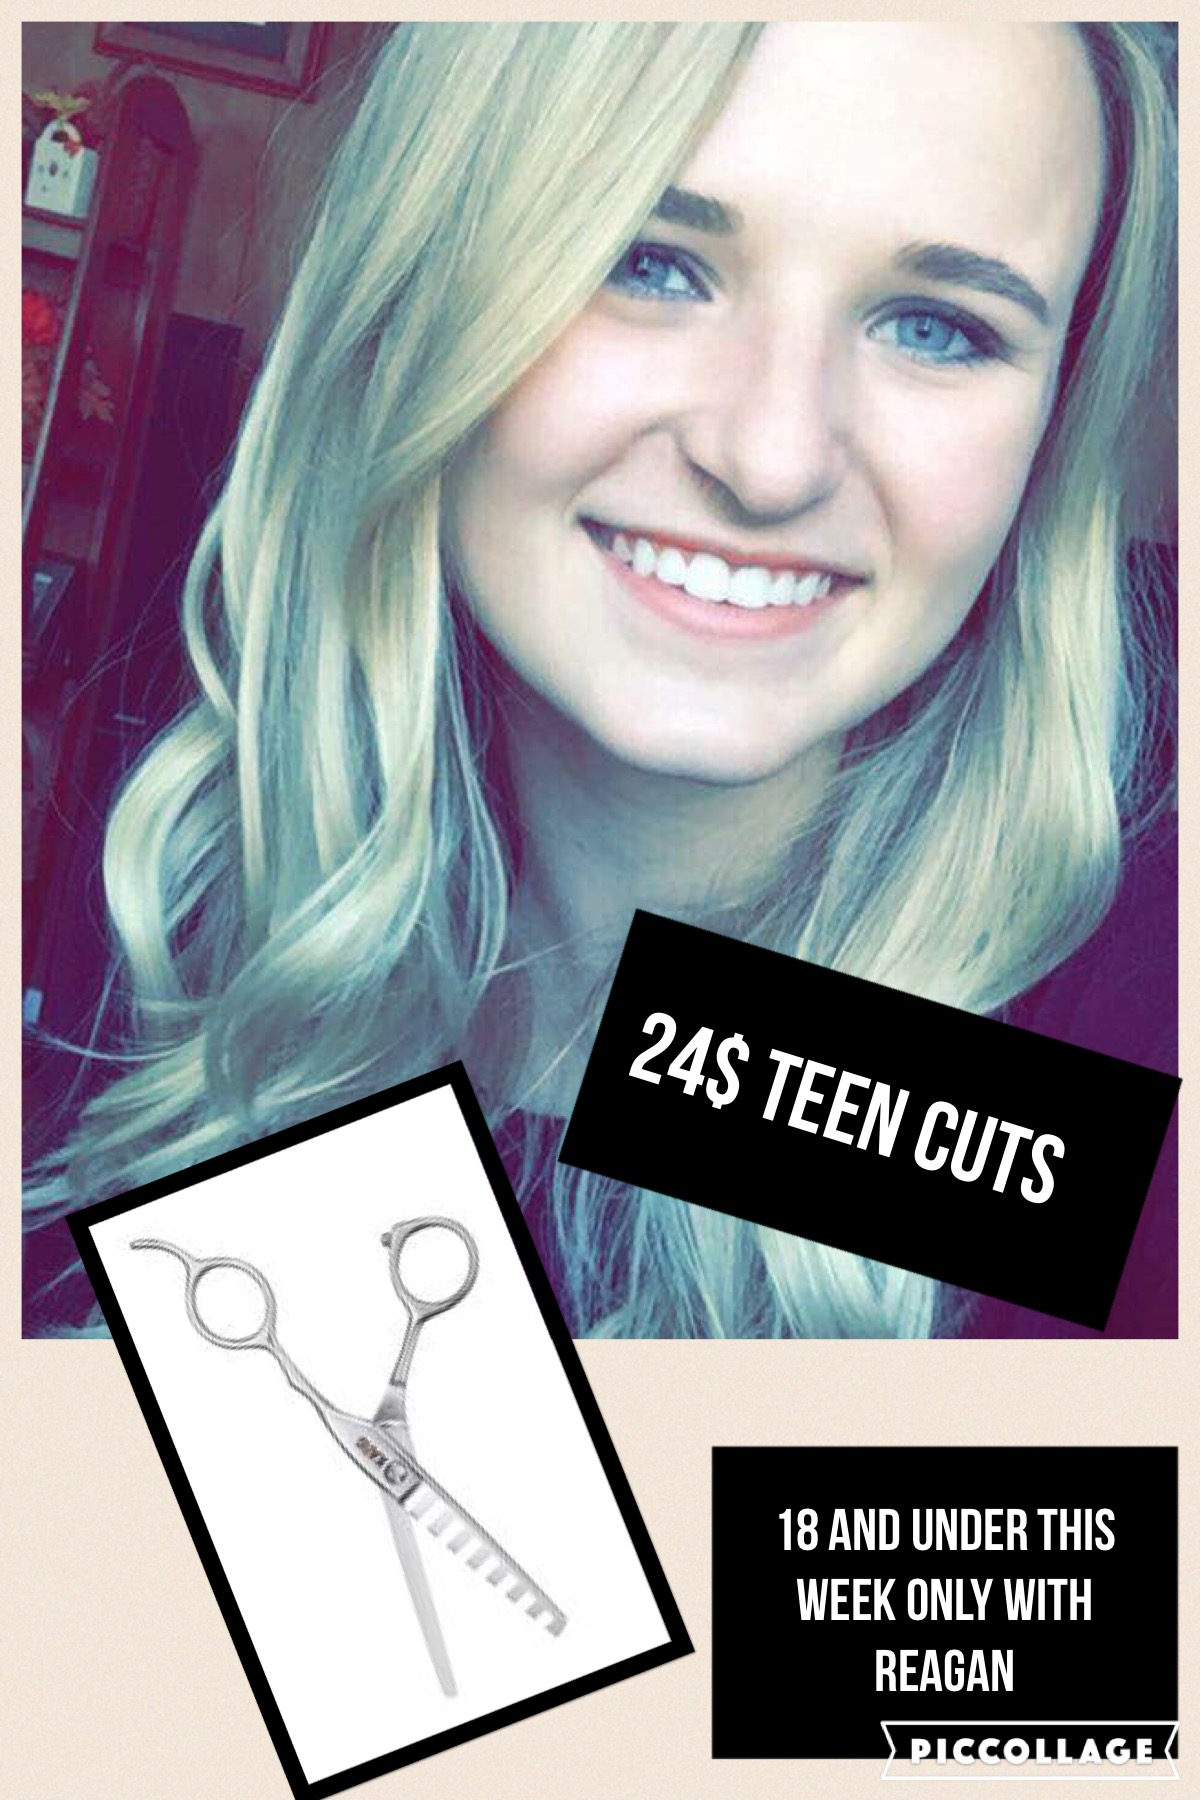 The Colorist Hair Salon in Cleveland is offering $24 haircuts this week for teens!